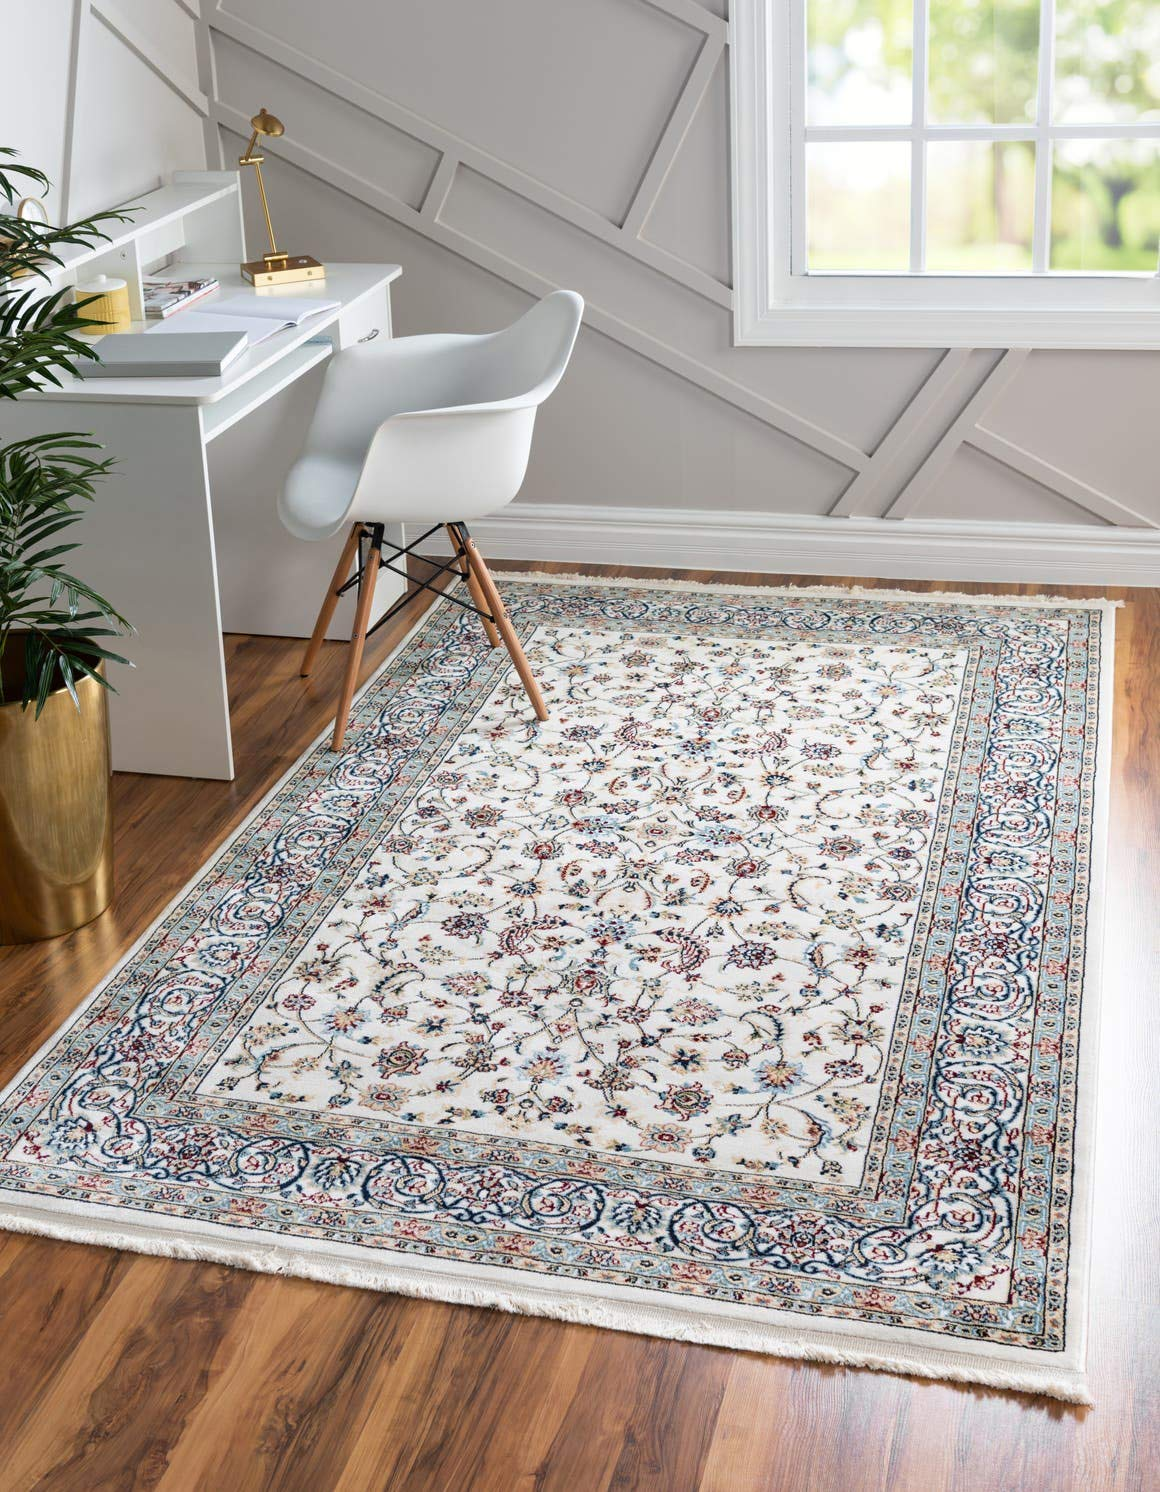 Unique Loom Narenj Collection Classic Traditional Repeating Pattern Ivory Area Rug 5 0 x 8 0